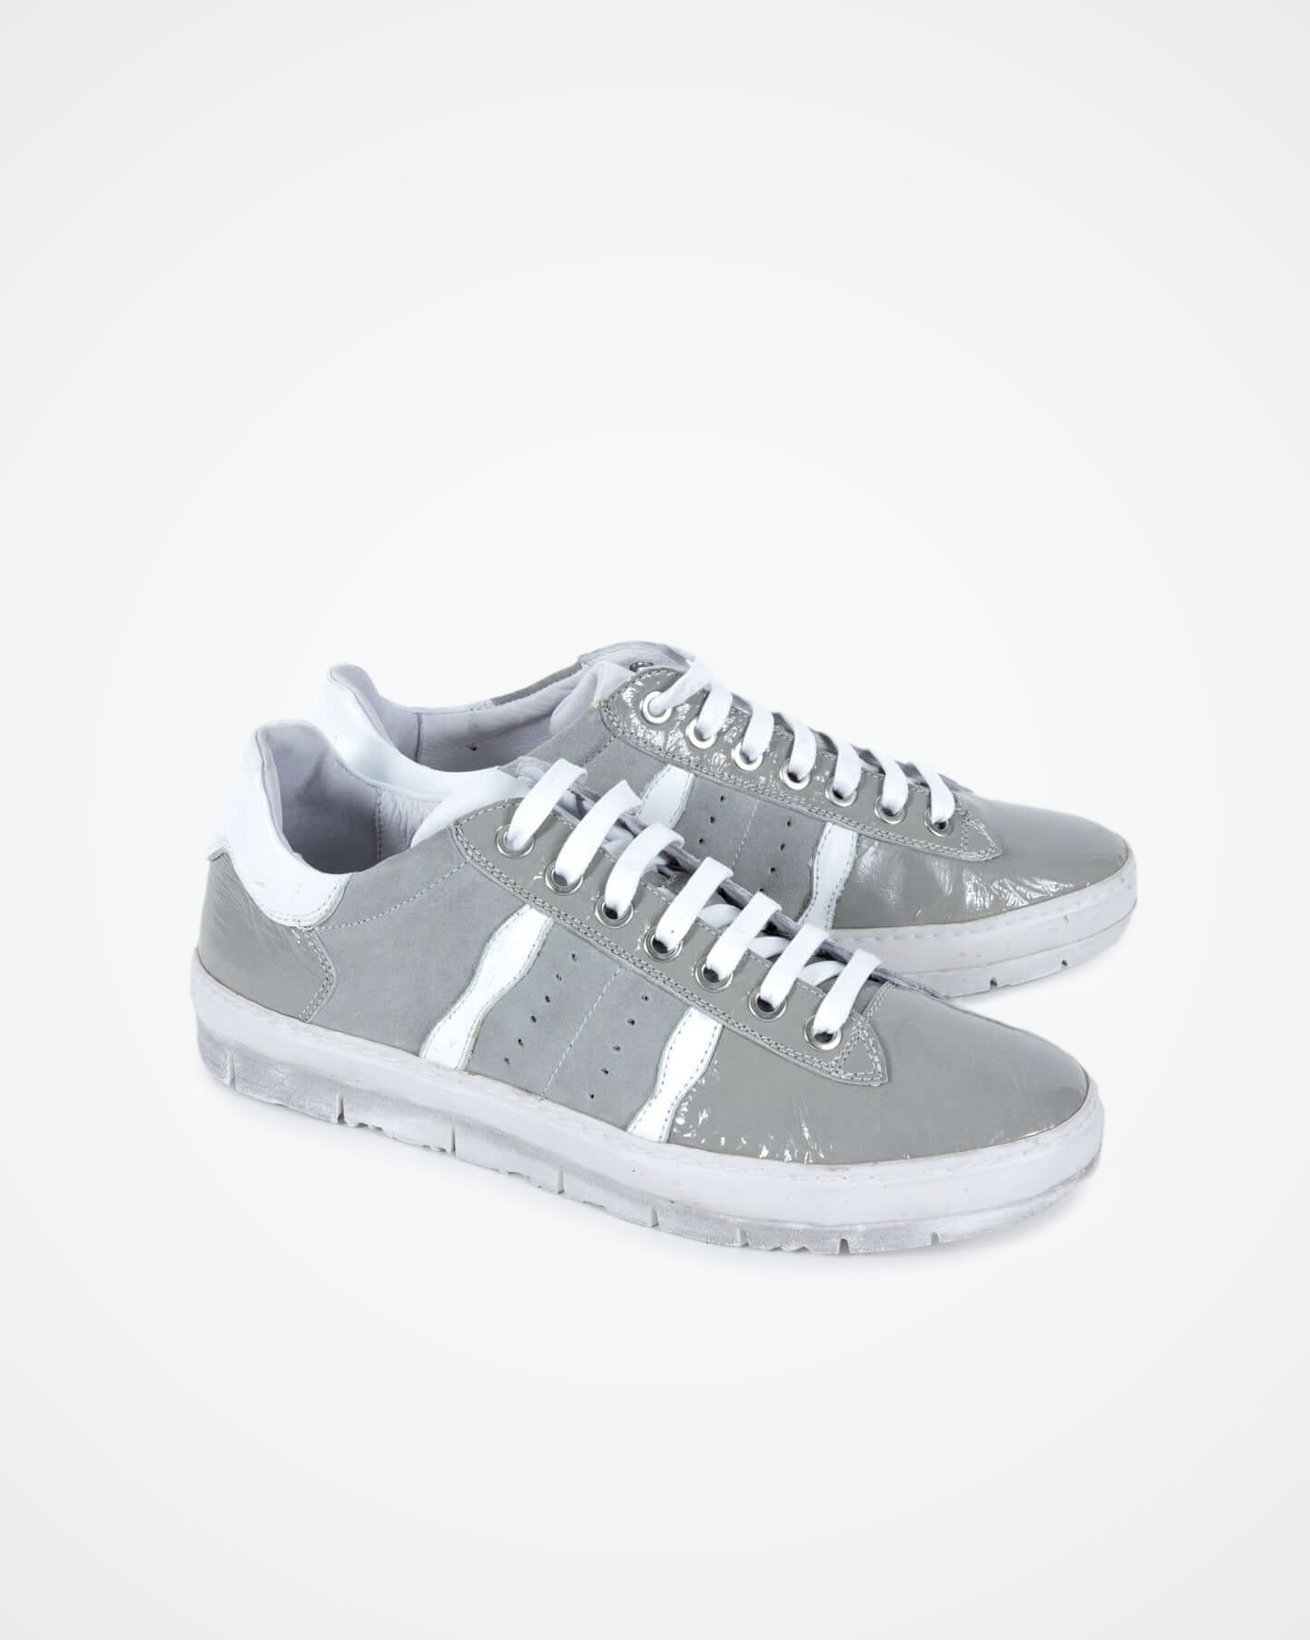 7587_embellished-trainers_grey-stripe_pair.jpg